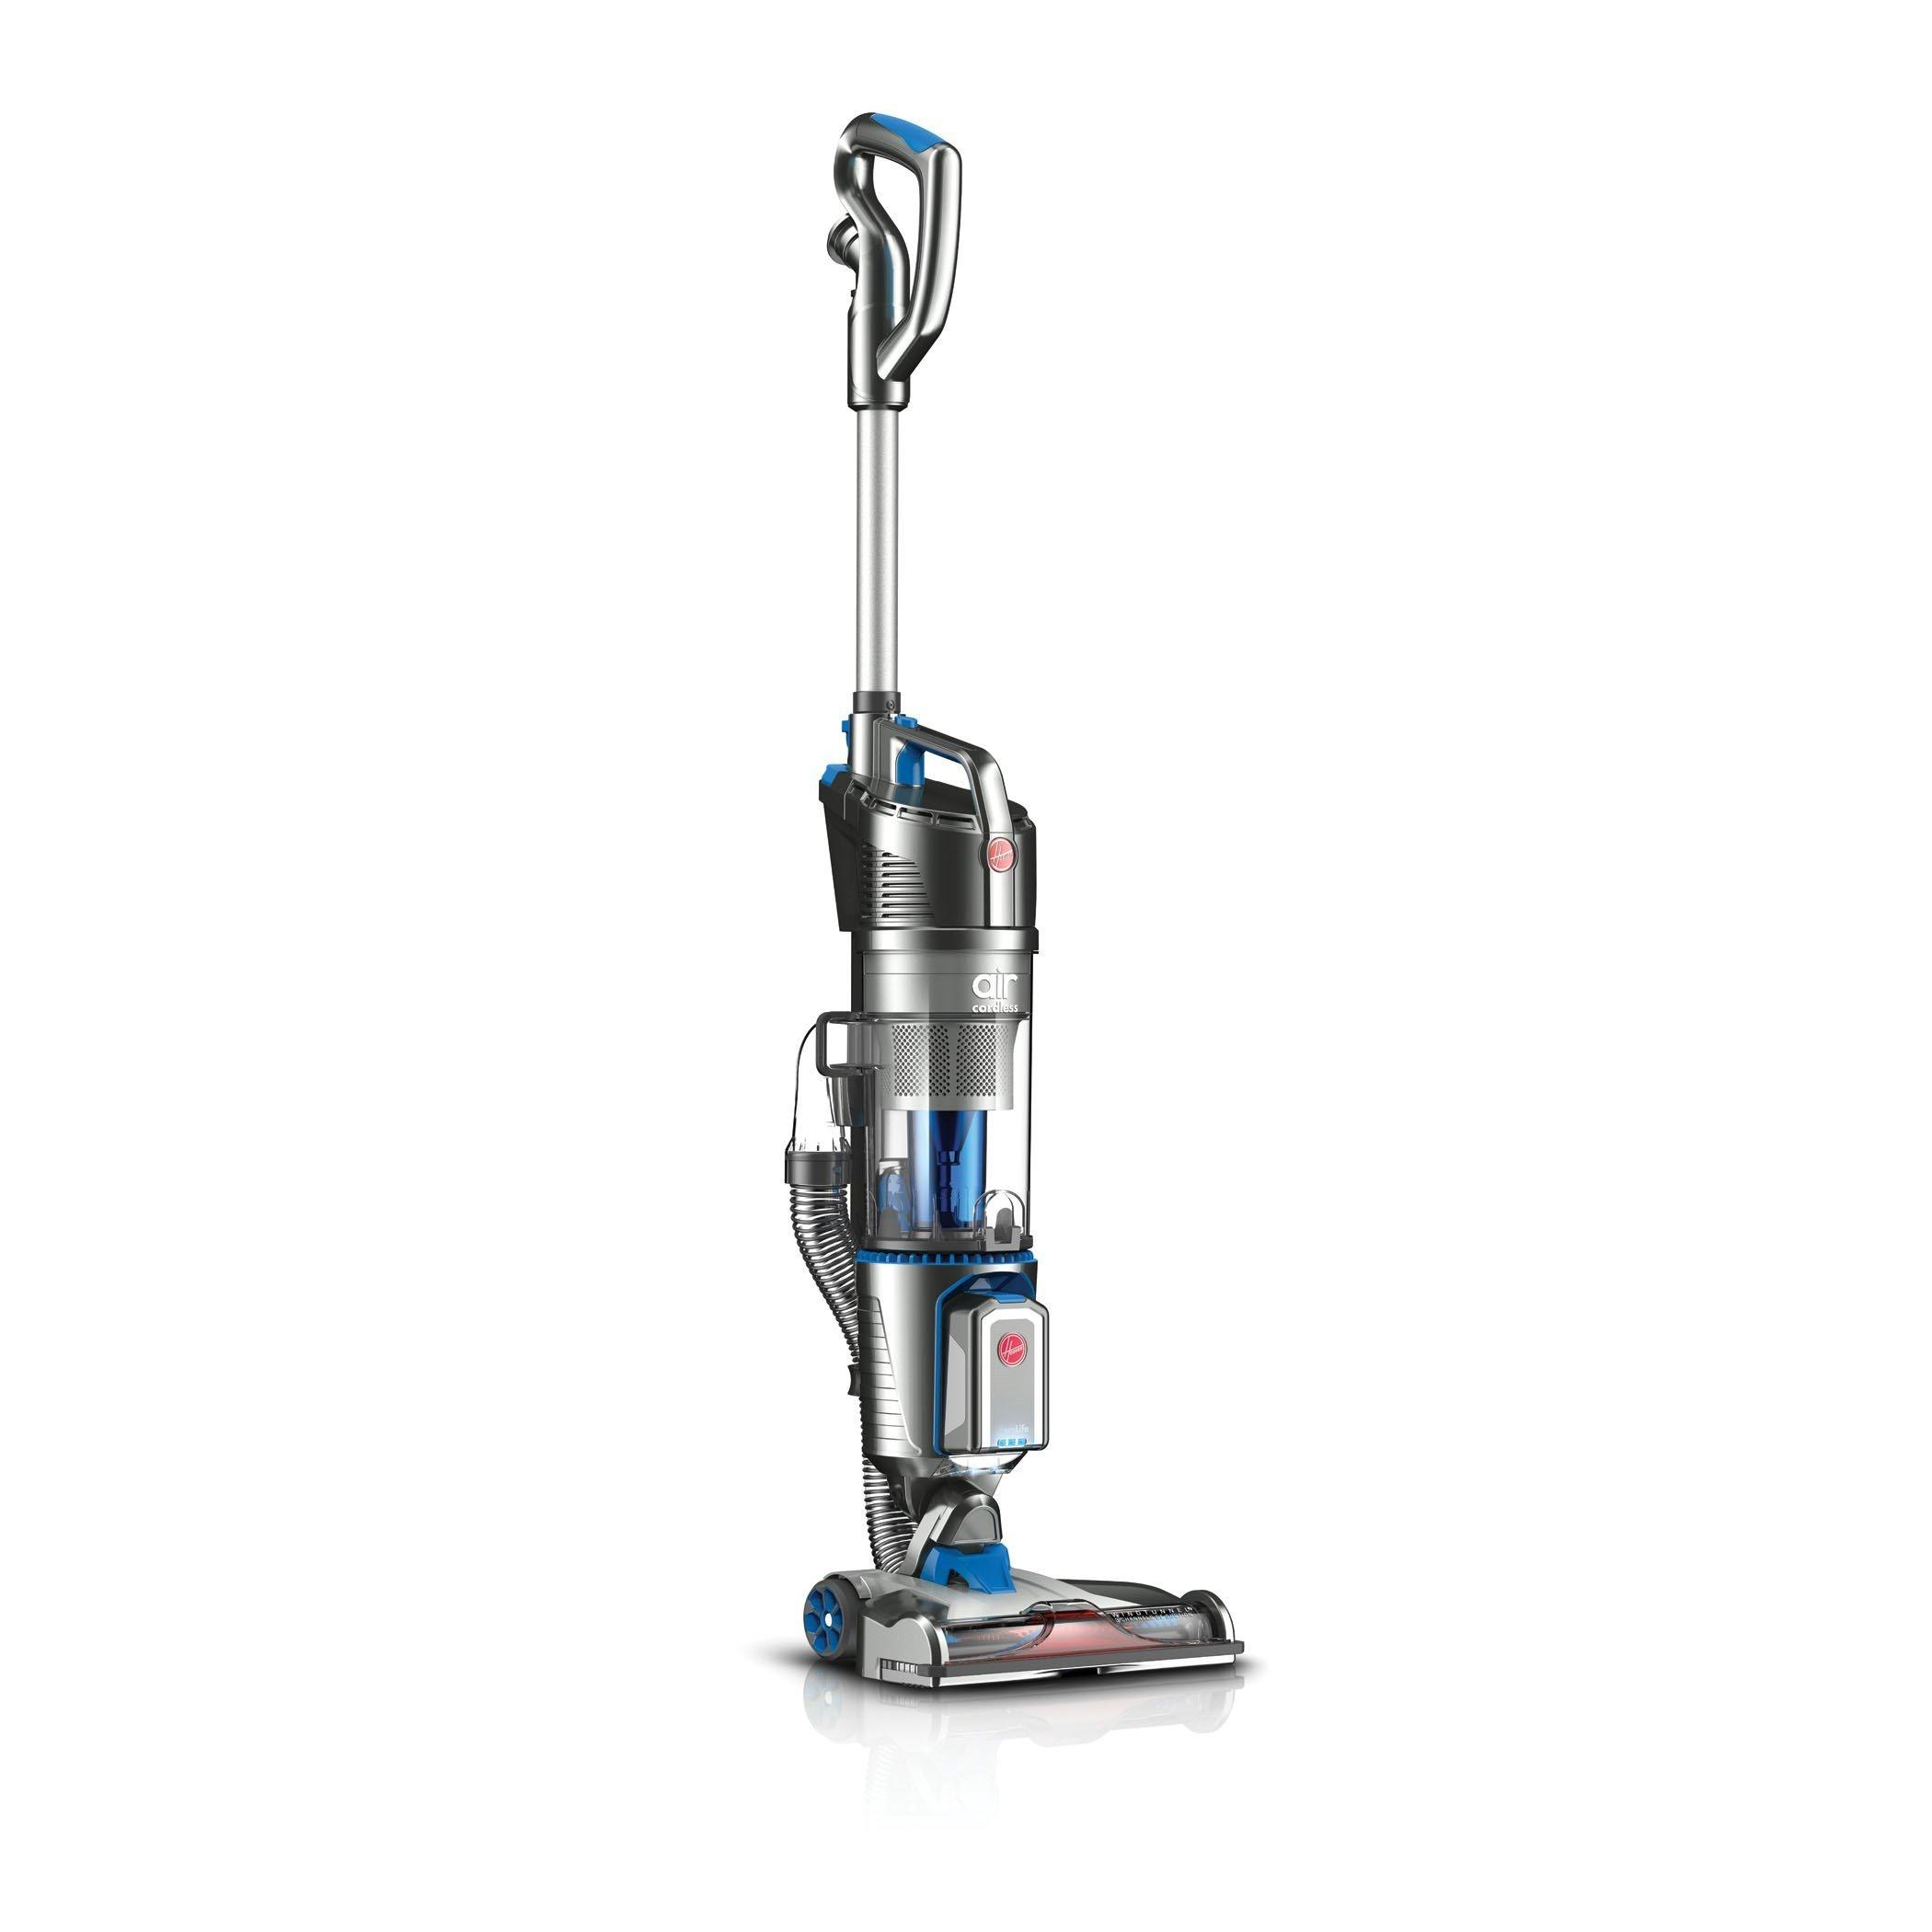 HOOVER AIR CORDLESS 20V Lithium Ion Bagless Upright Vacuum